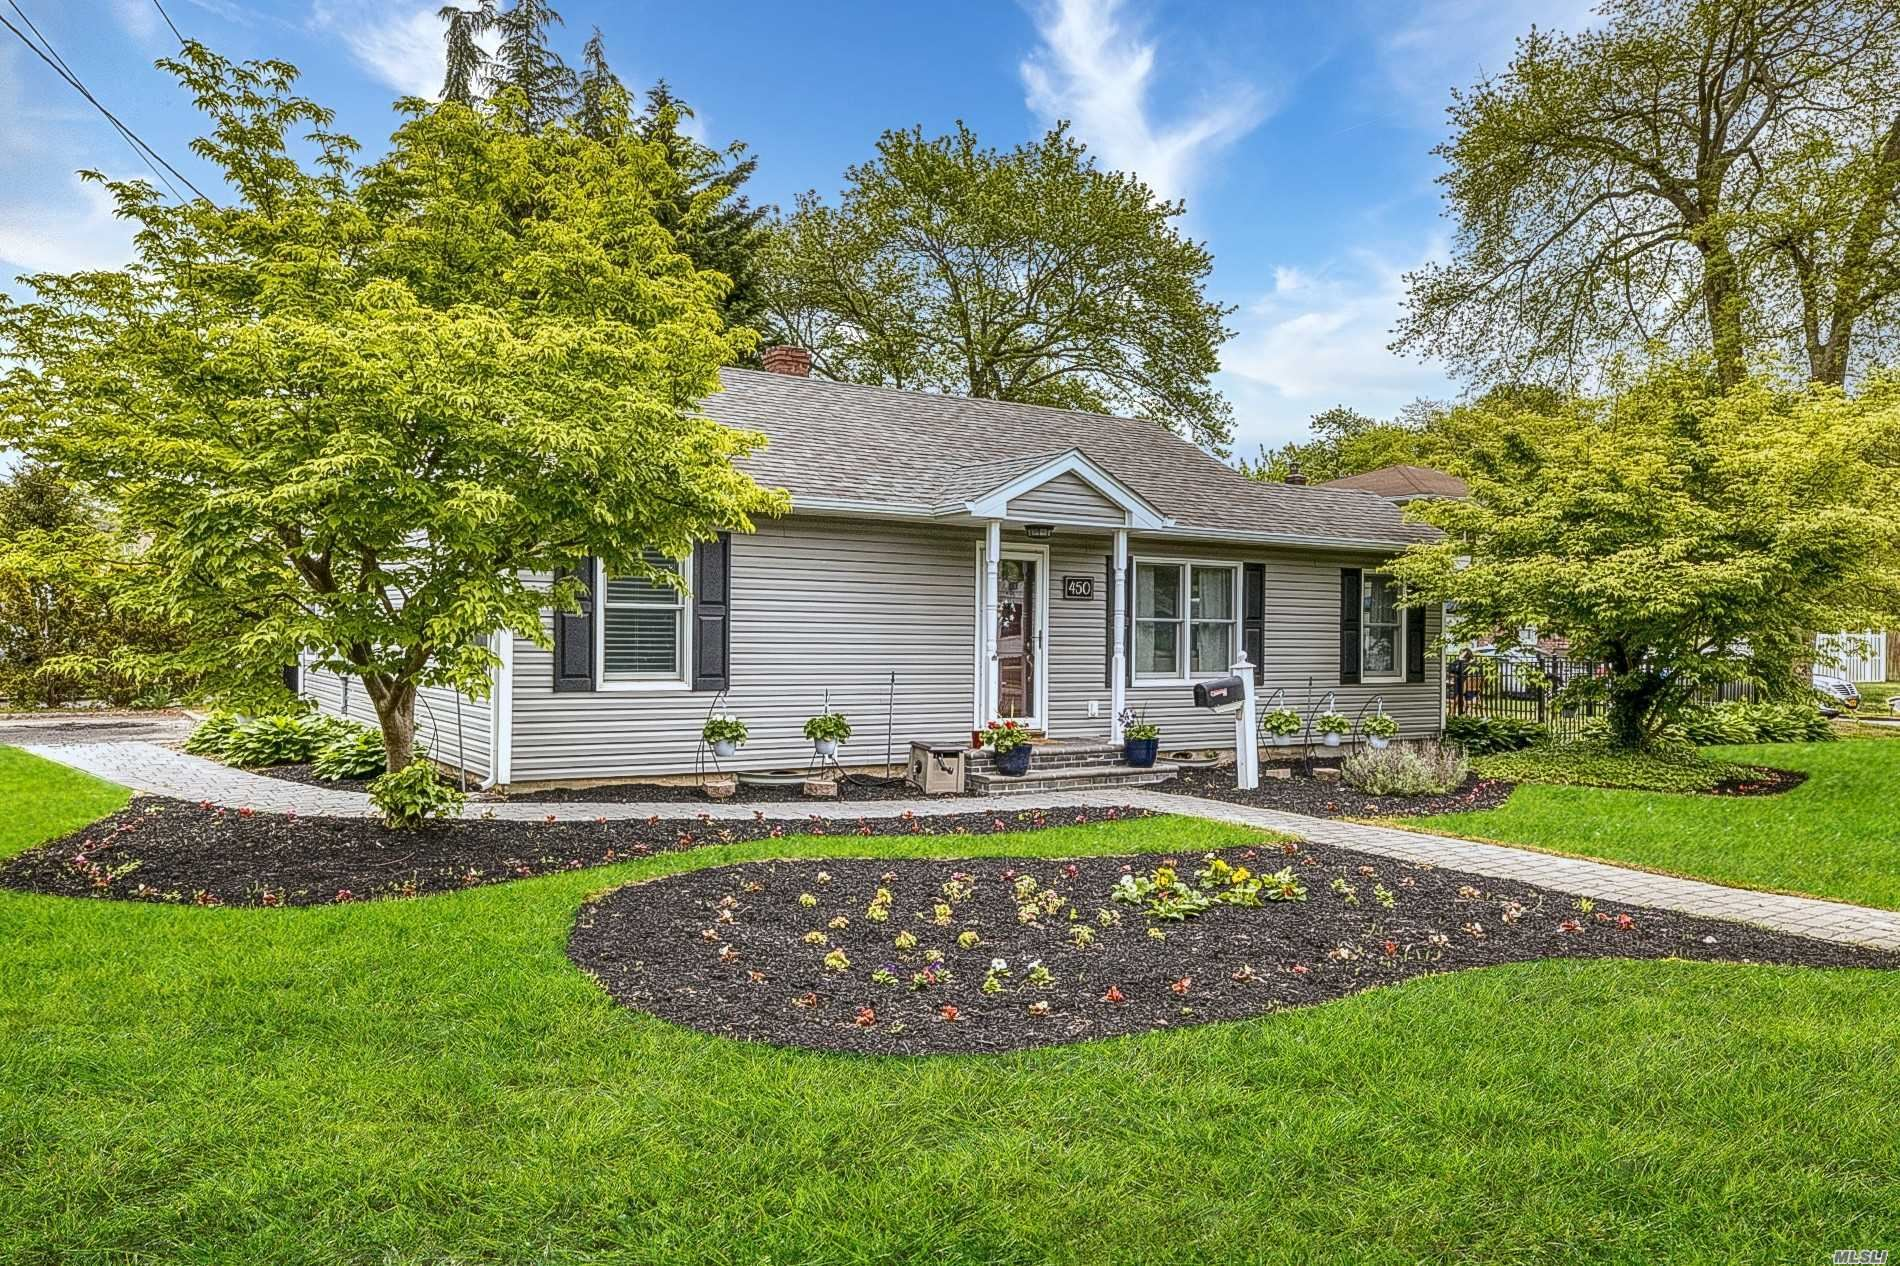 450 Pine Drive, Brightwaters, NY 11718 - MLS#: 3218232